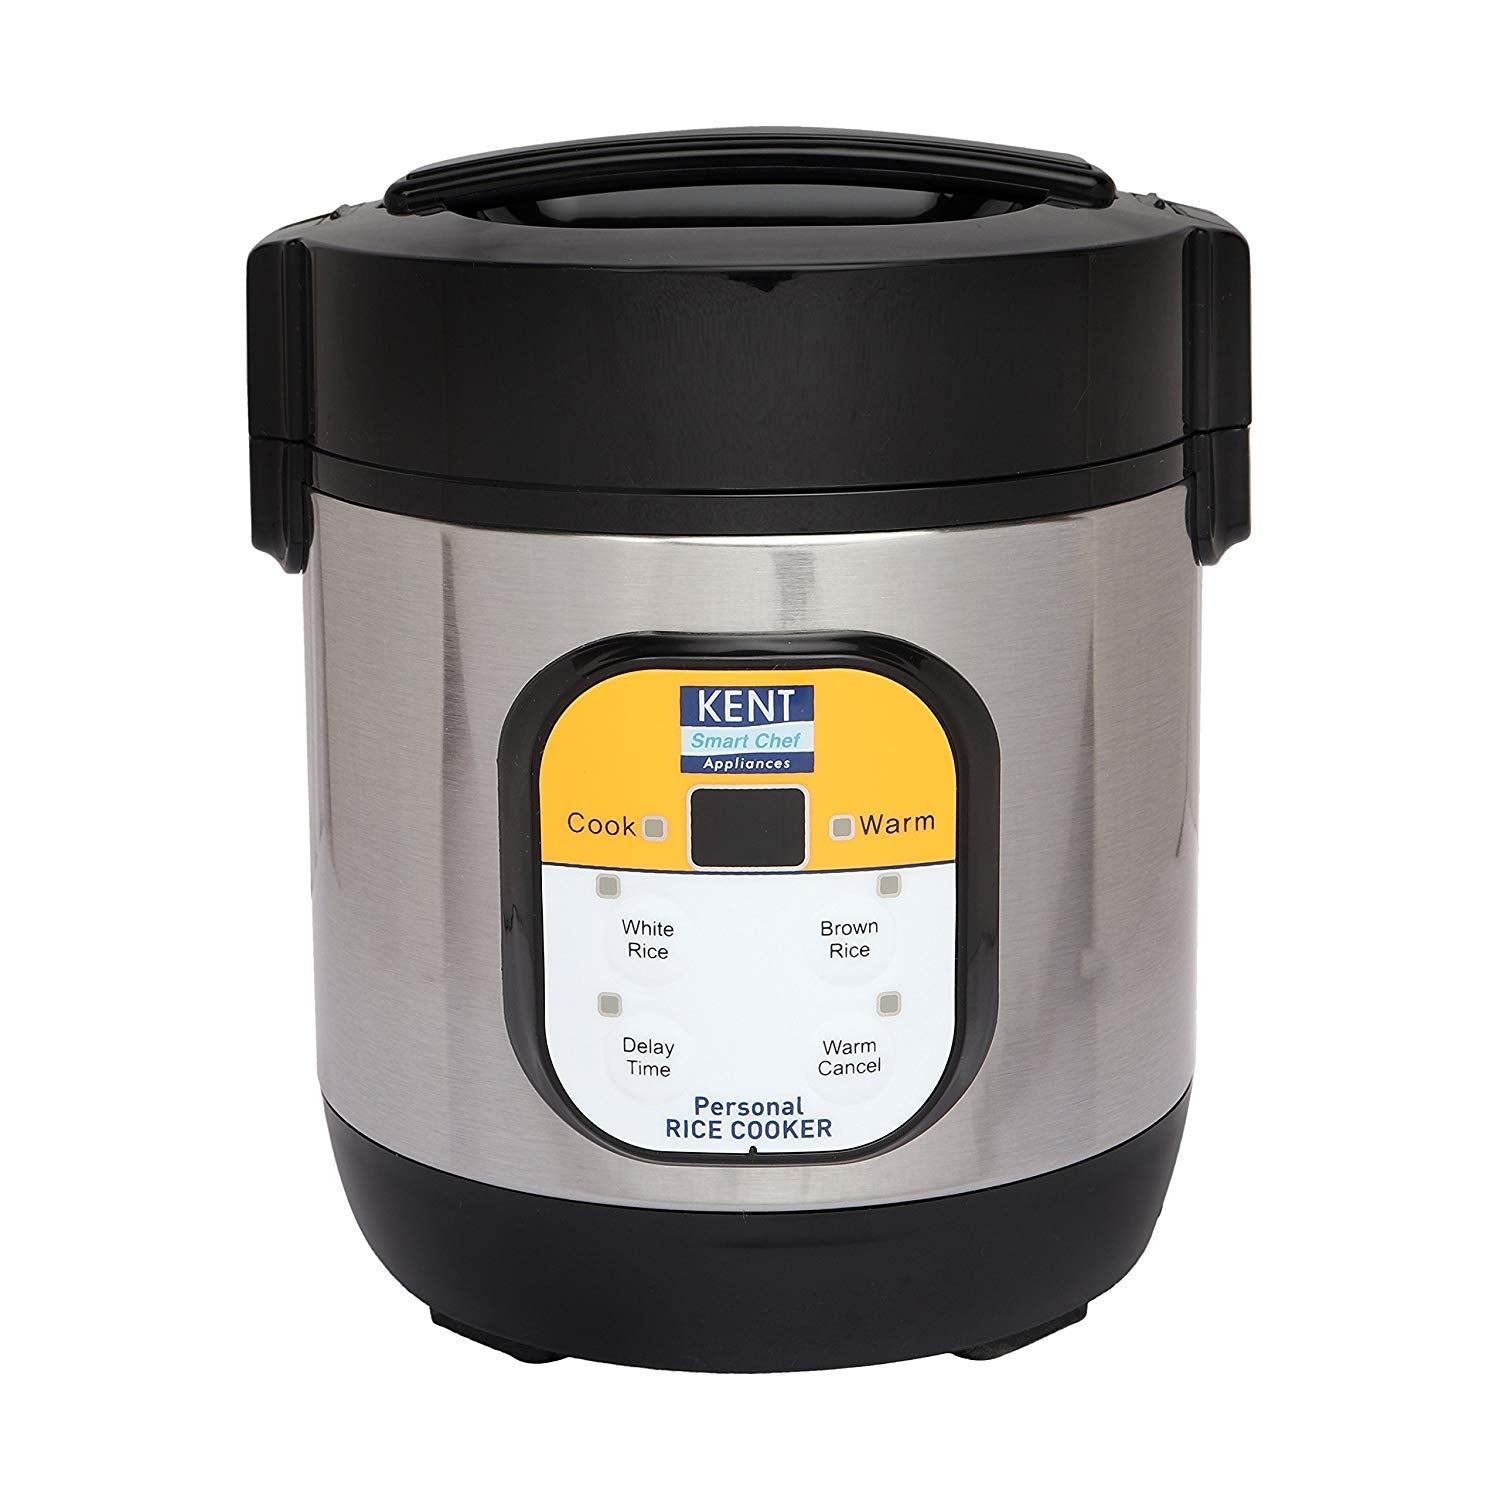 Kent Personal Rice Cooker get best offers deals free and coupons online at buythevalue.in